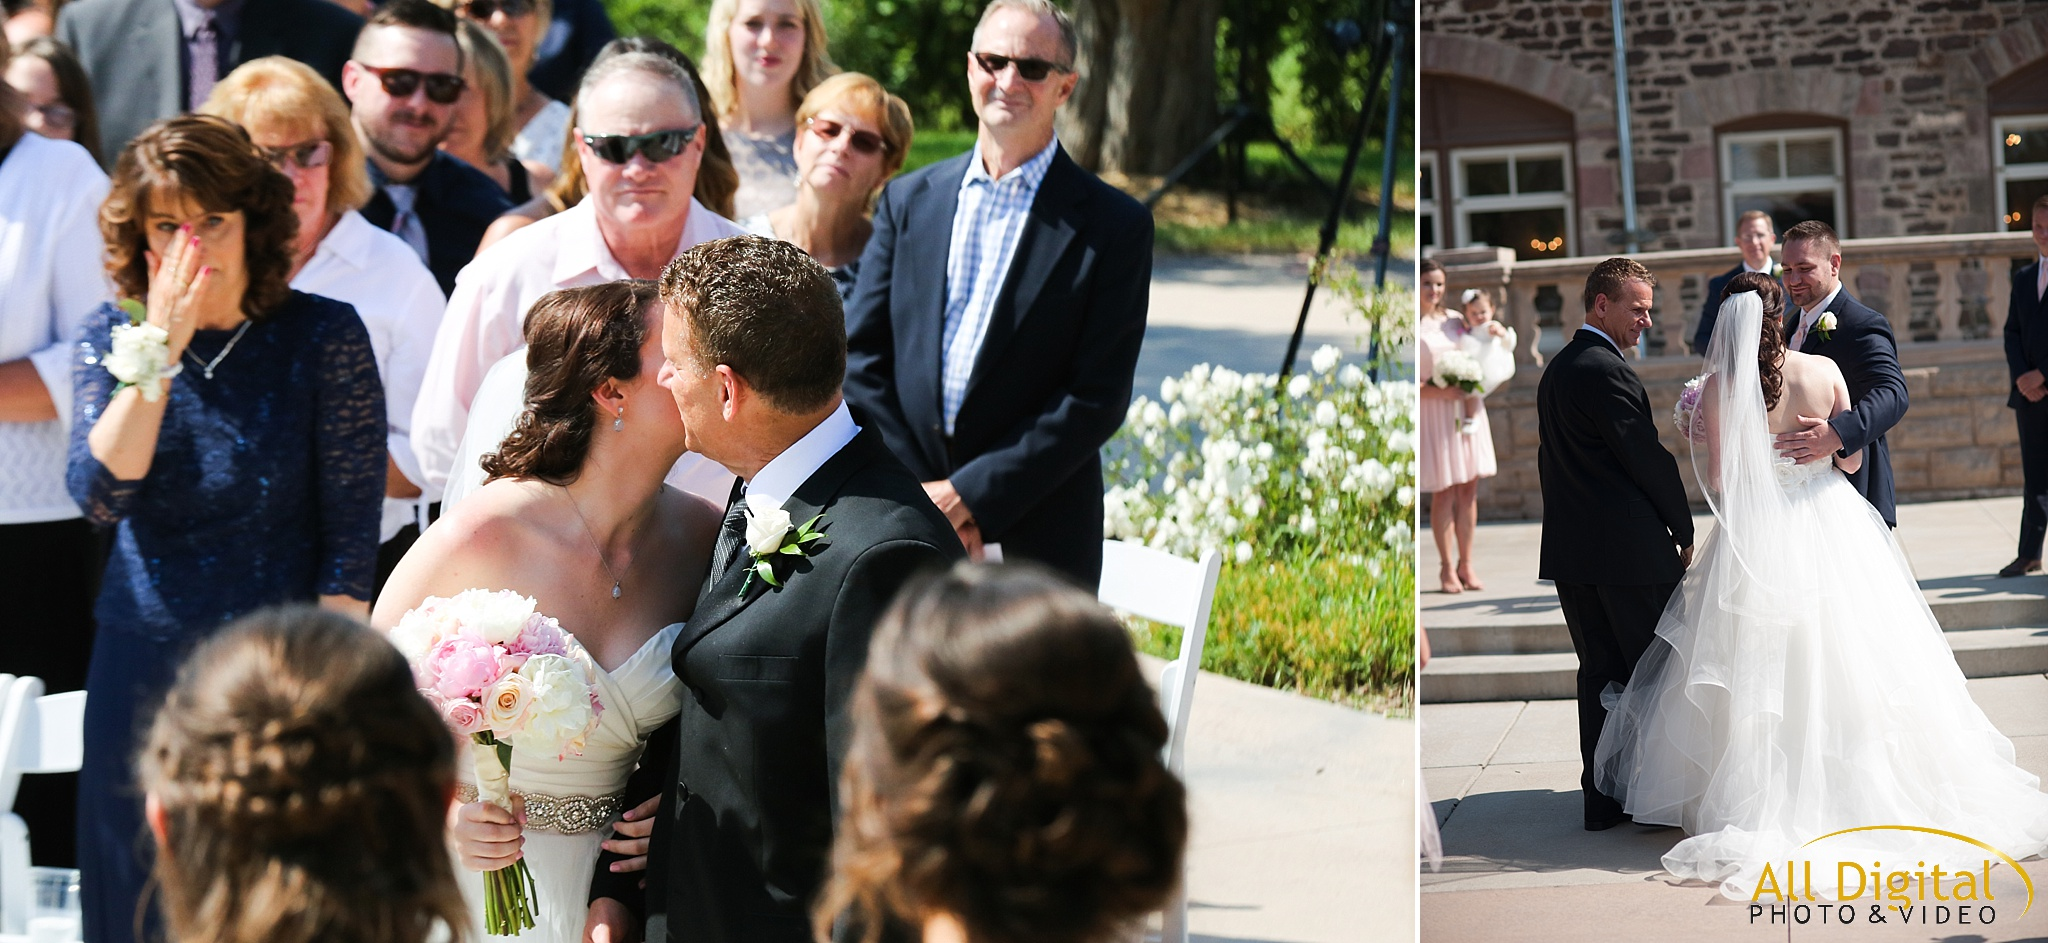 Father kissing the bride and giving her away at the Highlands Ranch Mansion.